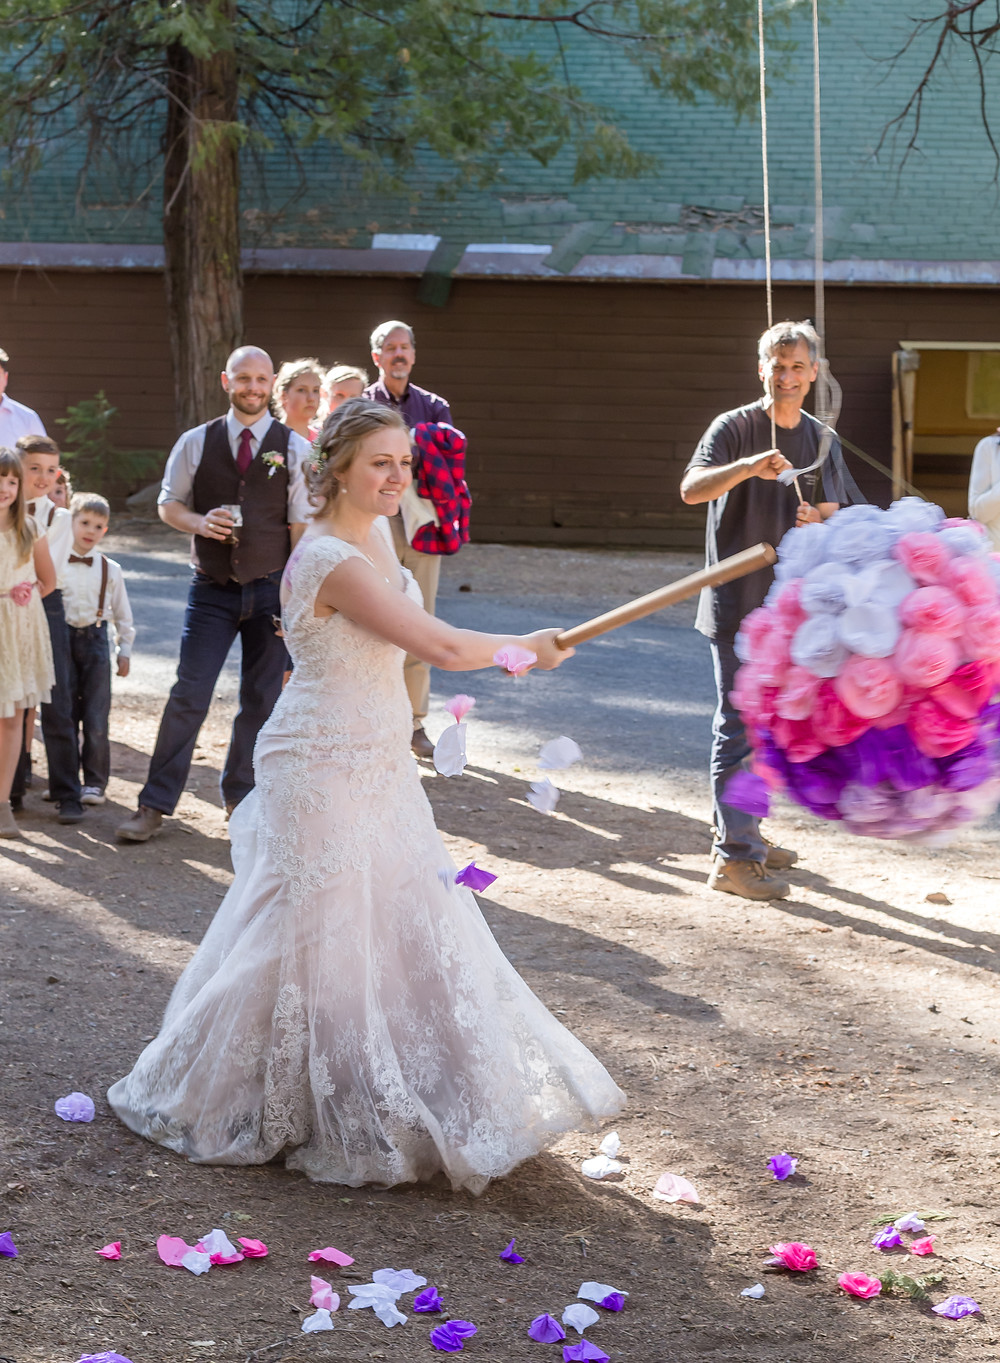 Bride & wedding piñata